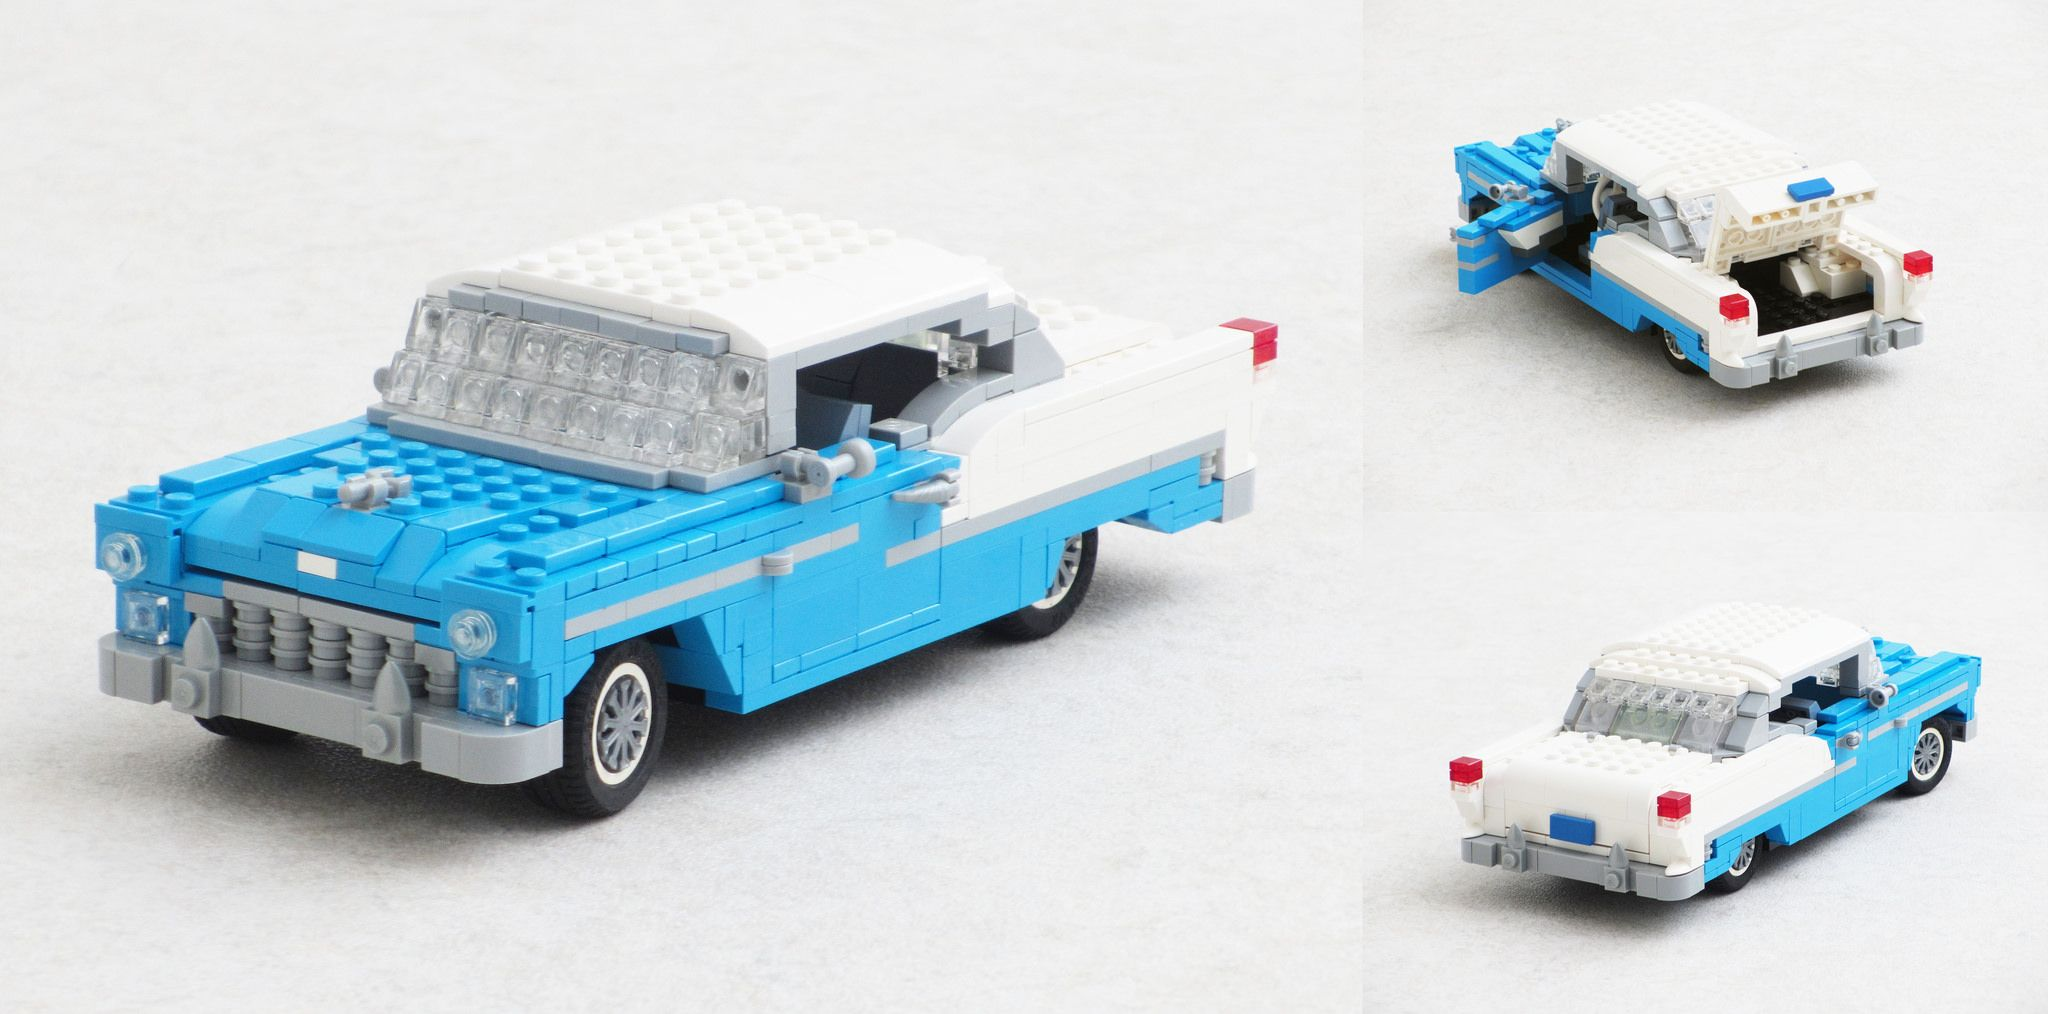 55 Bel Air Lego Models Cool Lego Lego Creations